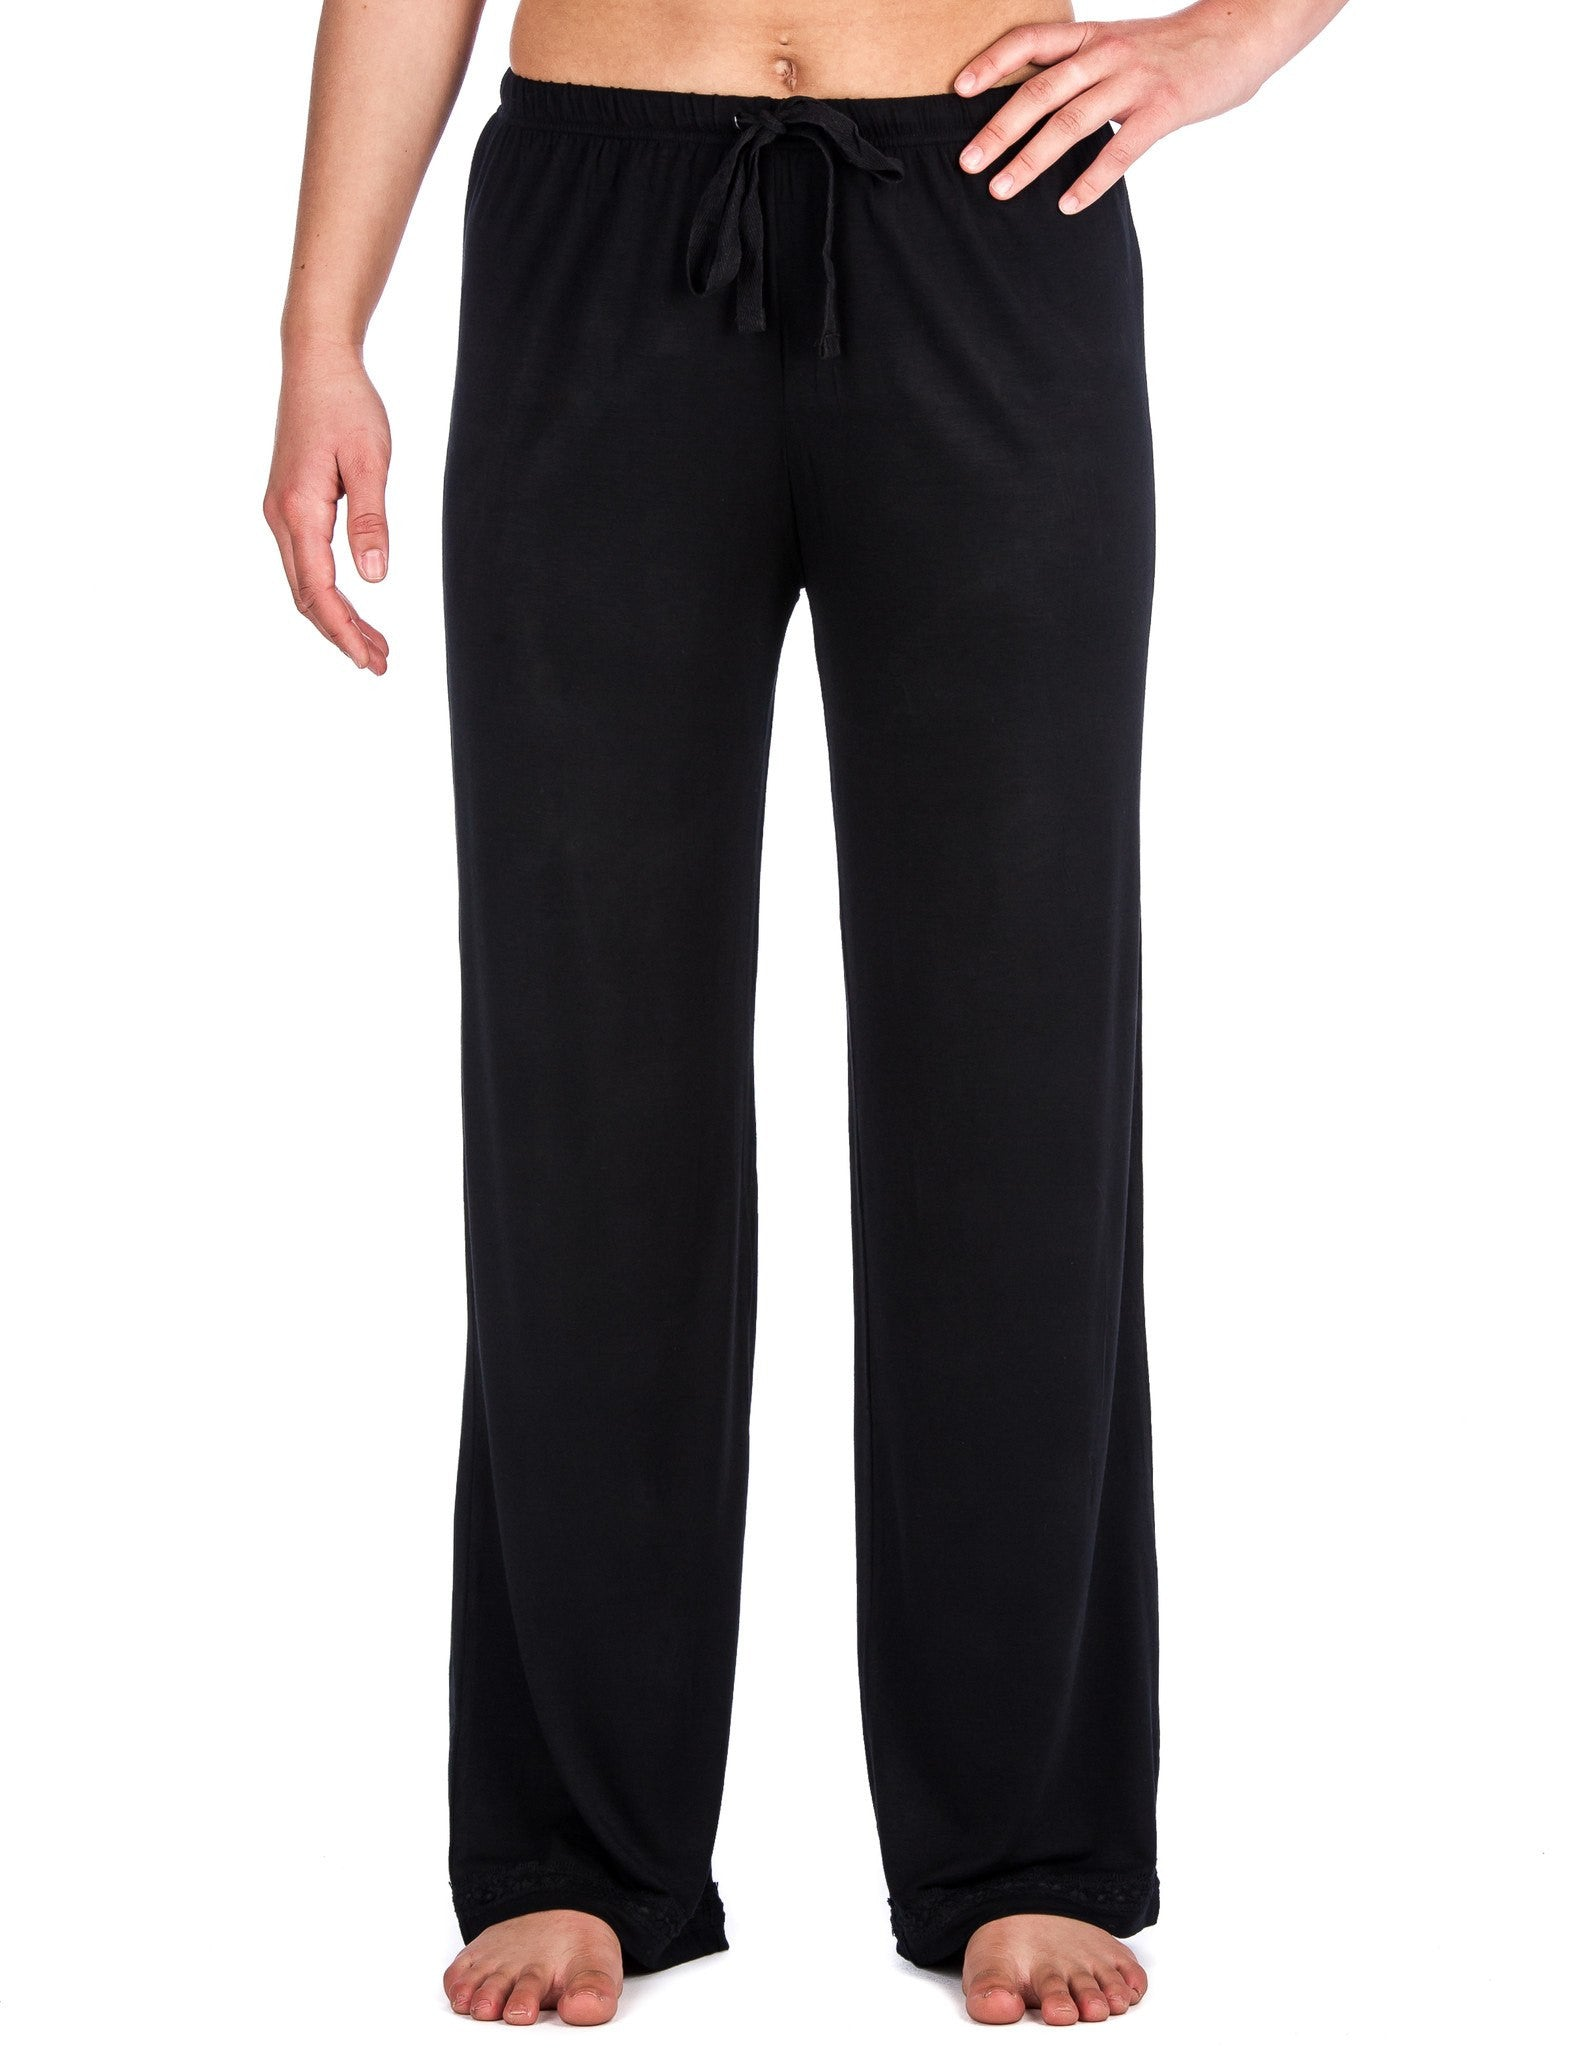 Women's Cool Knit Lounge Pants